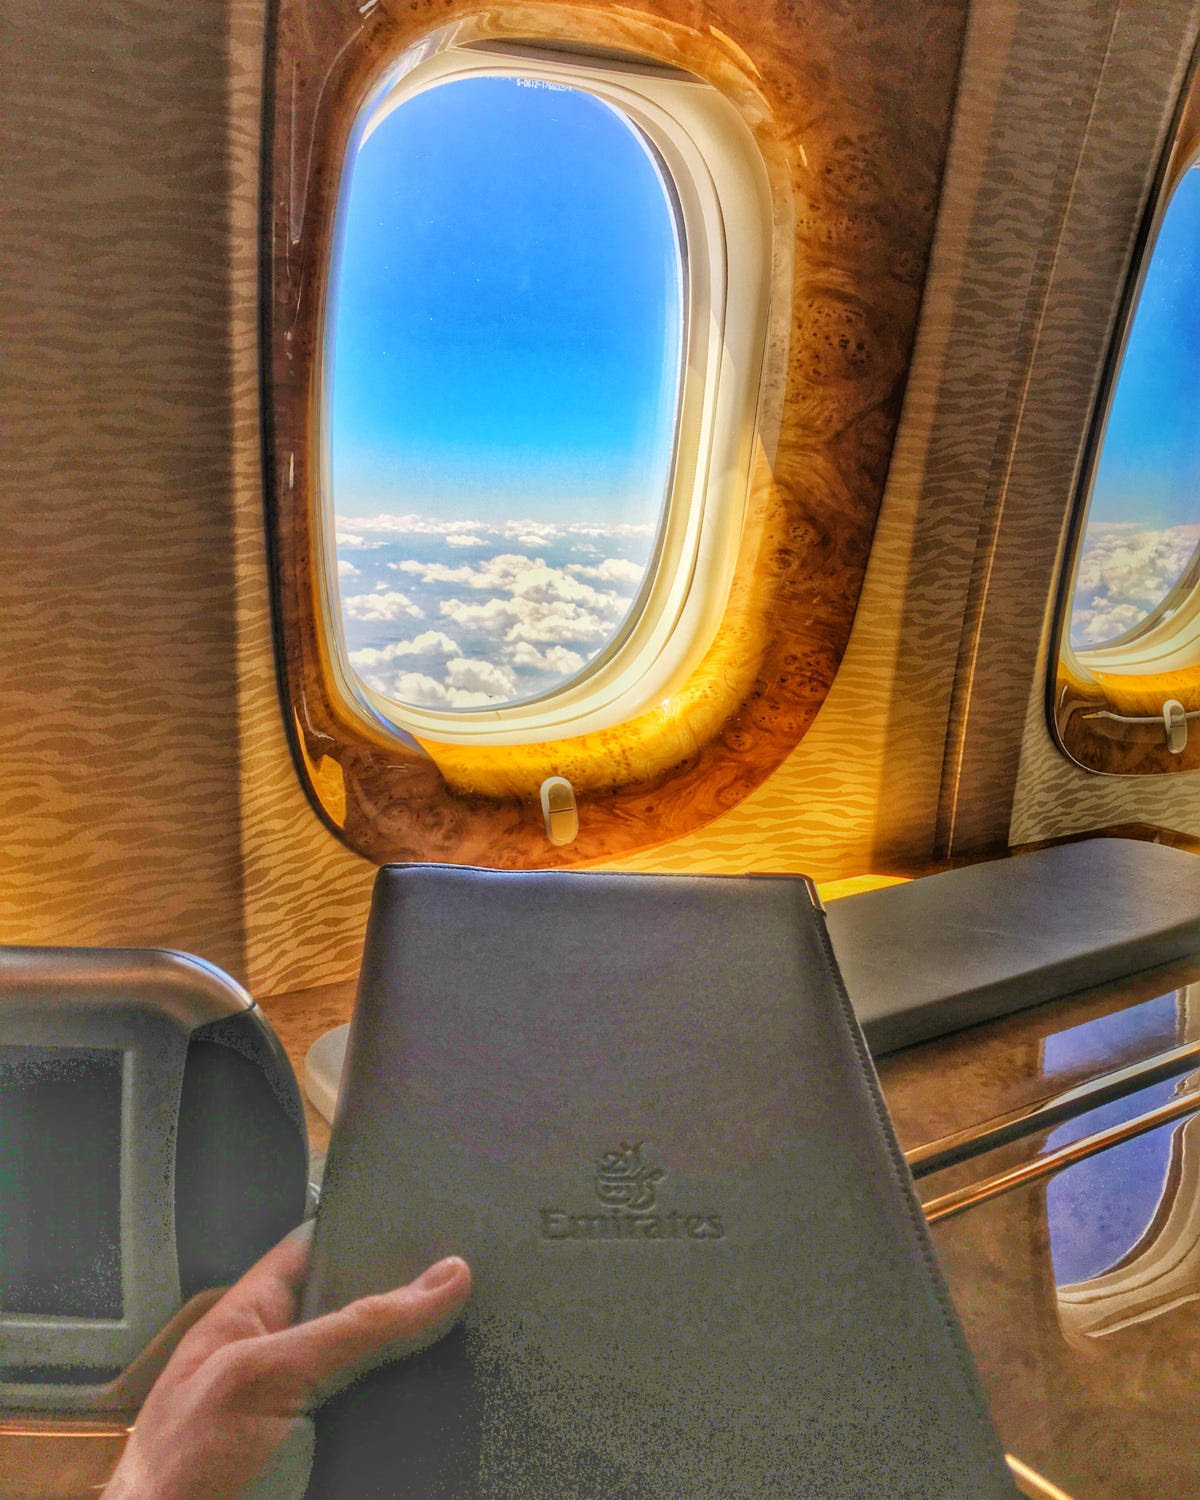 The glossy wood paneling and gold trim provide the perfect frame for the view outside. First class on an Emirates Airbus A380 has only 14 seats, so the service is tailored to each person.